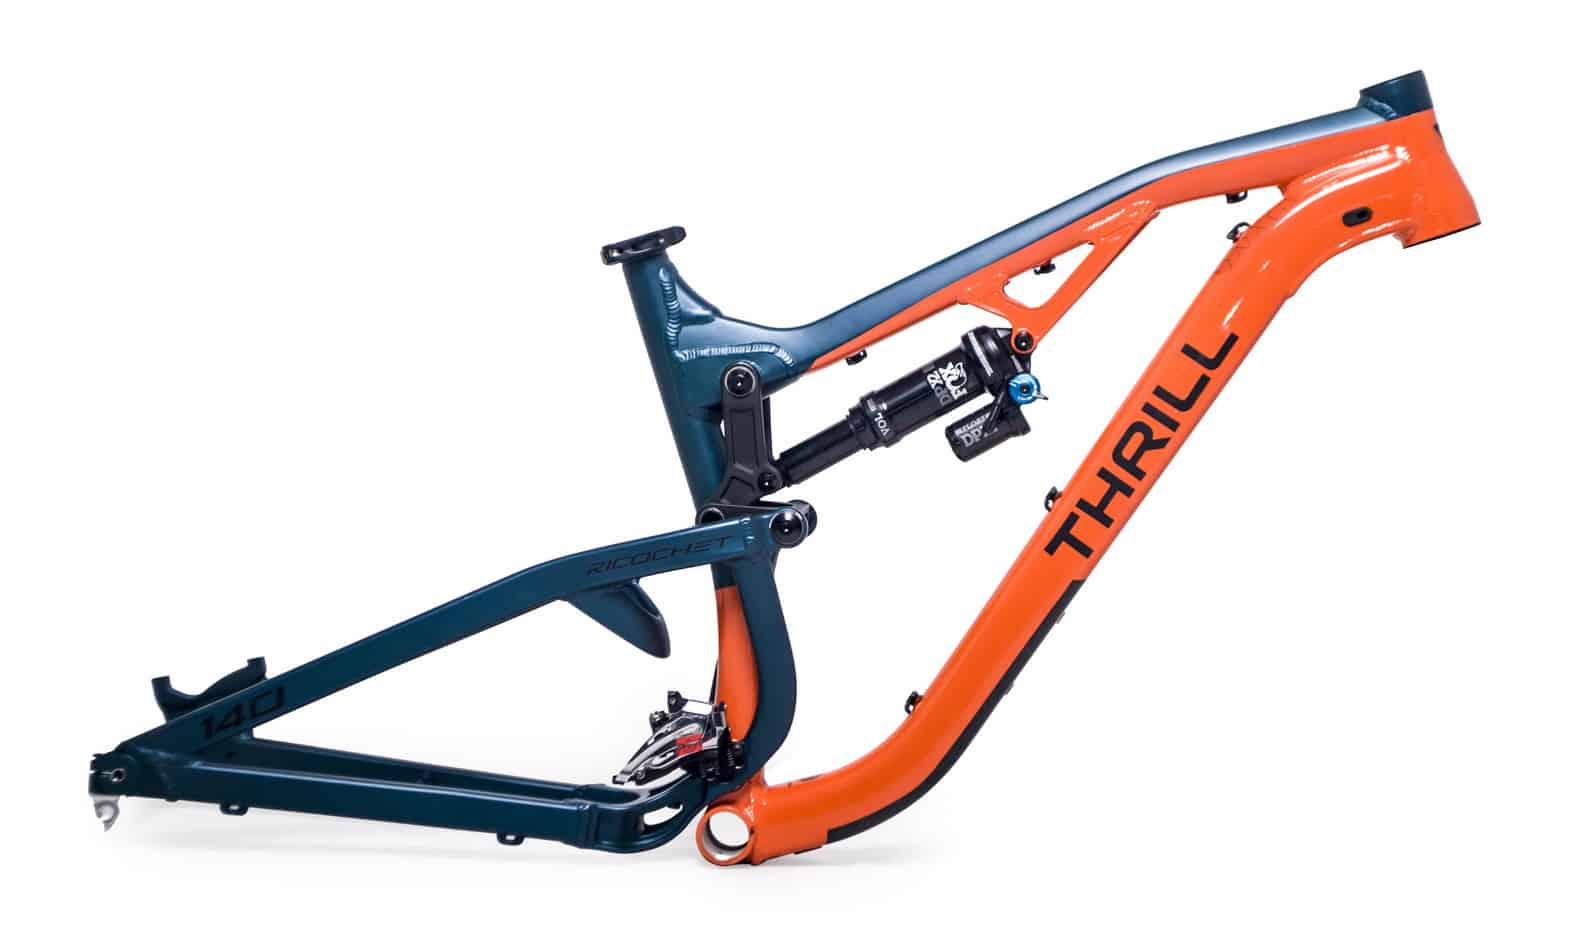 Frameset Thrill Ricochet T140 (Fox)